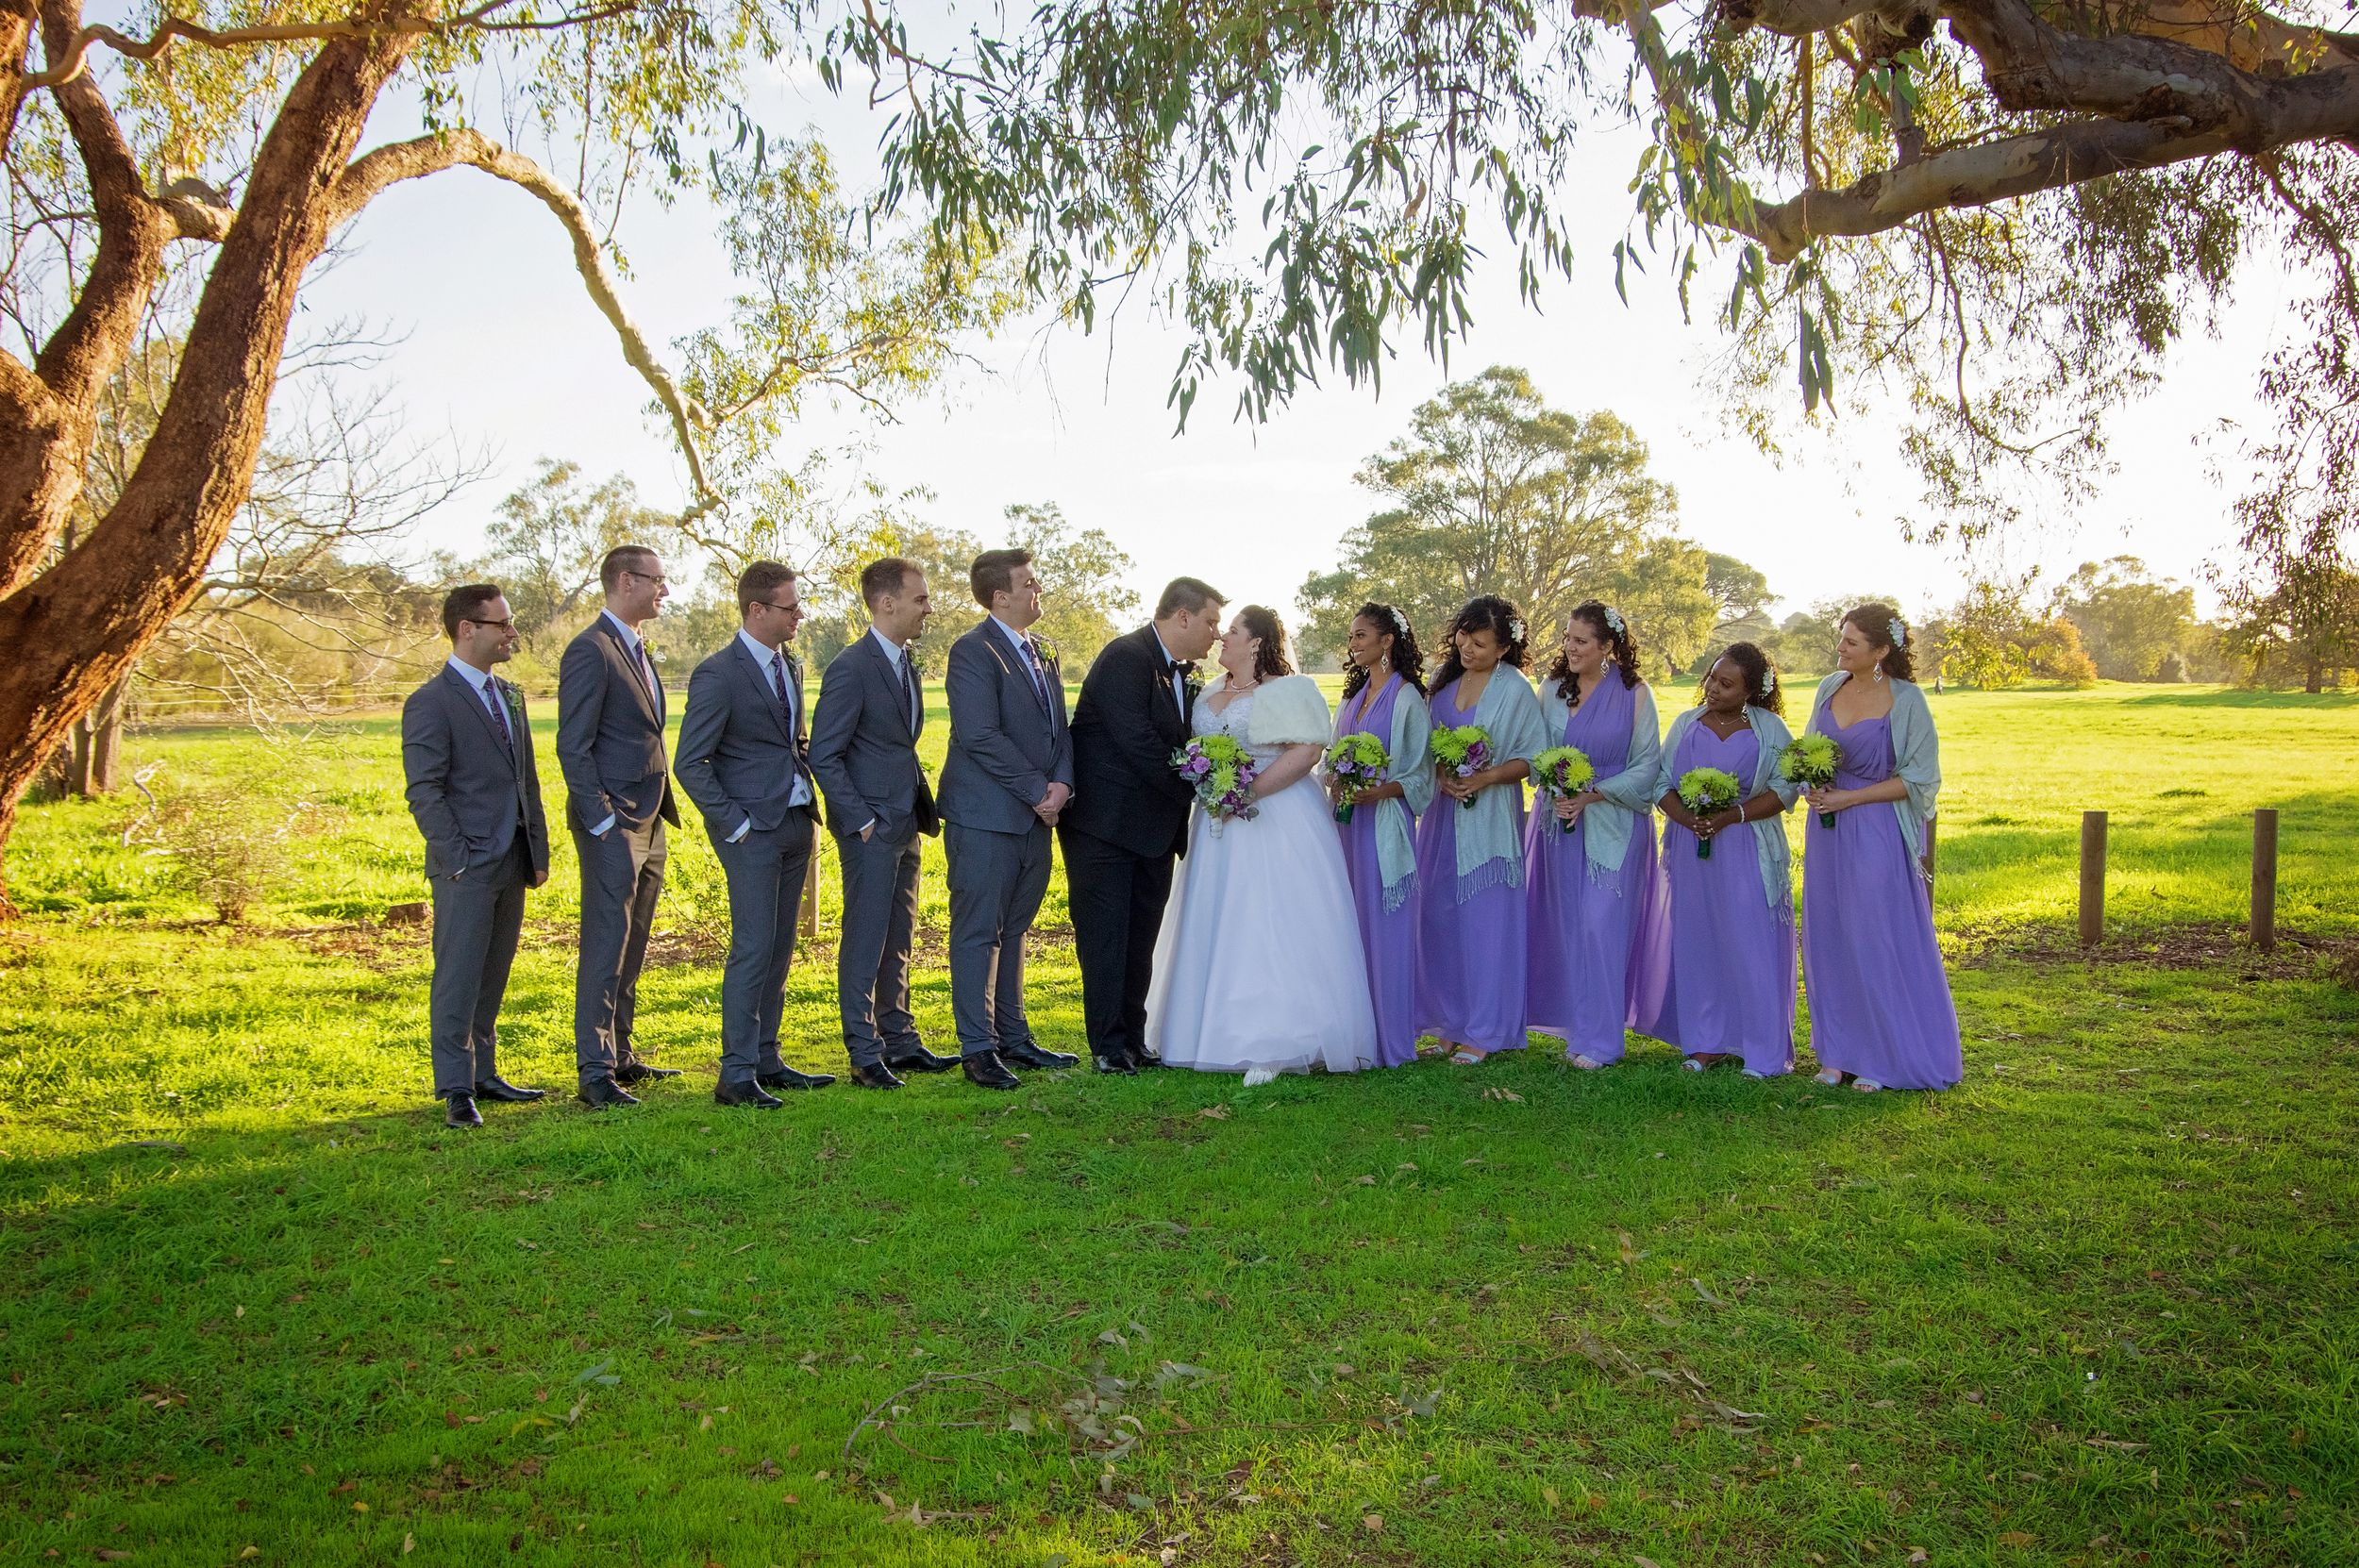 bridal party in grey and purple smiling at bride and groom